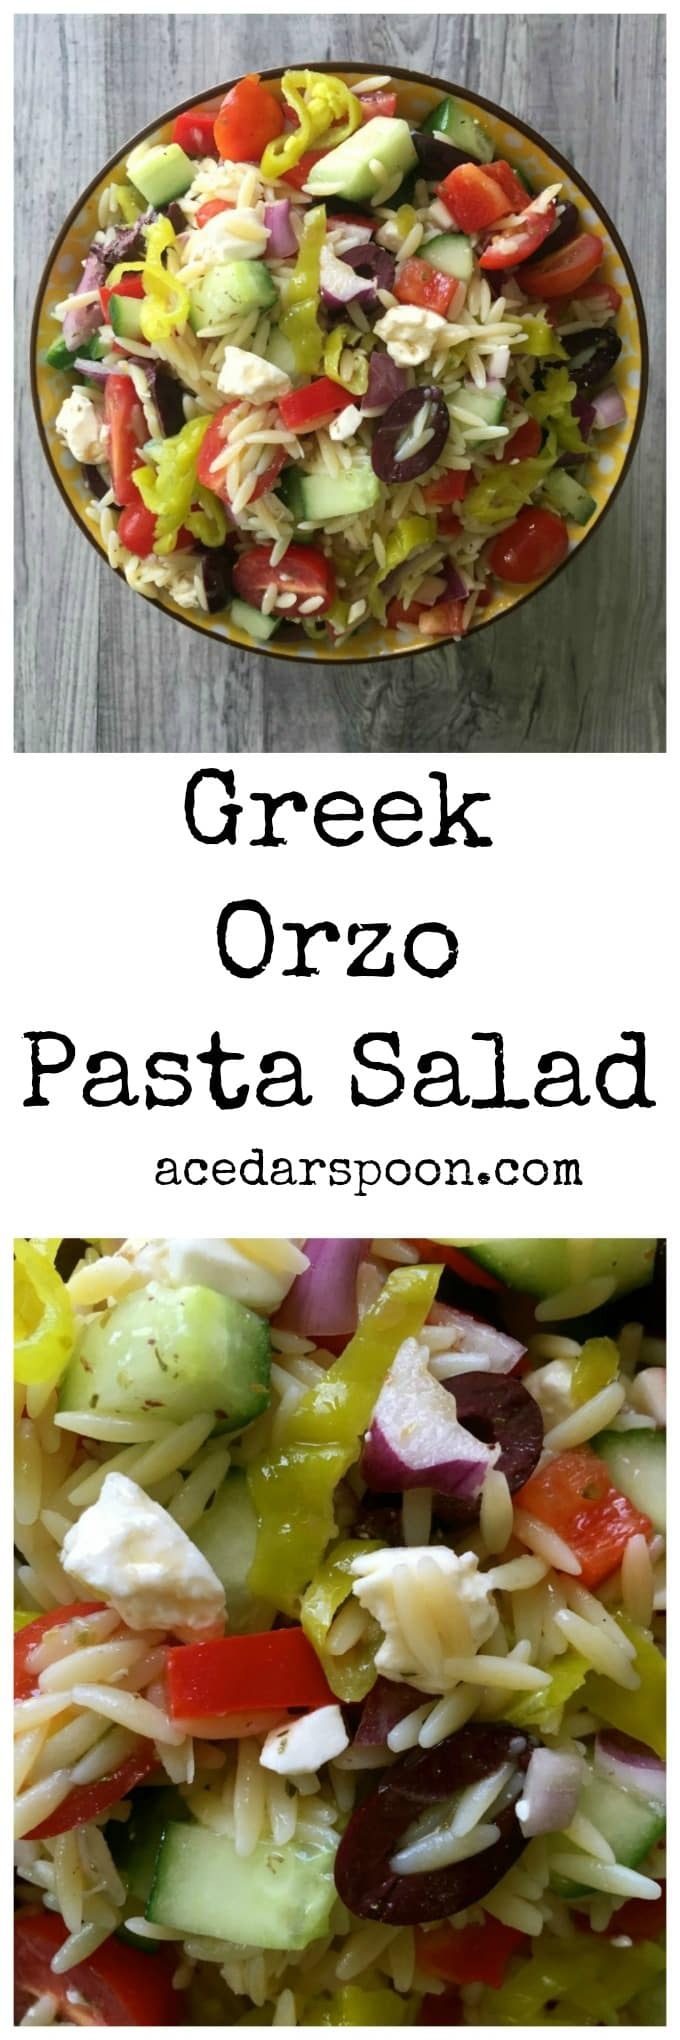 Greek Orzo Pasta Salad A Cedar Spoon